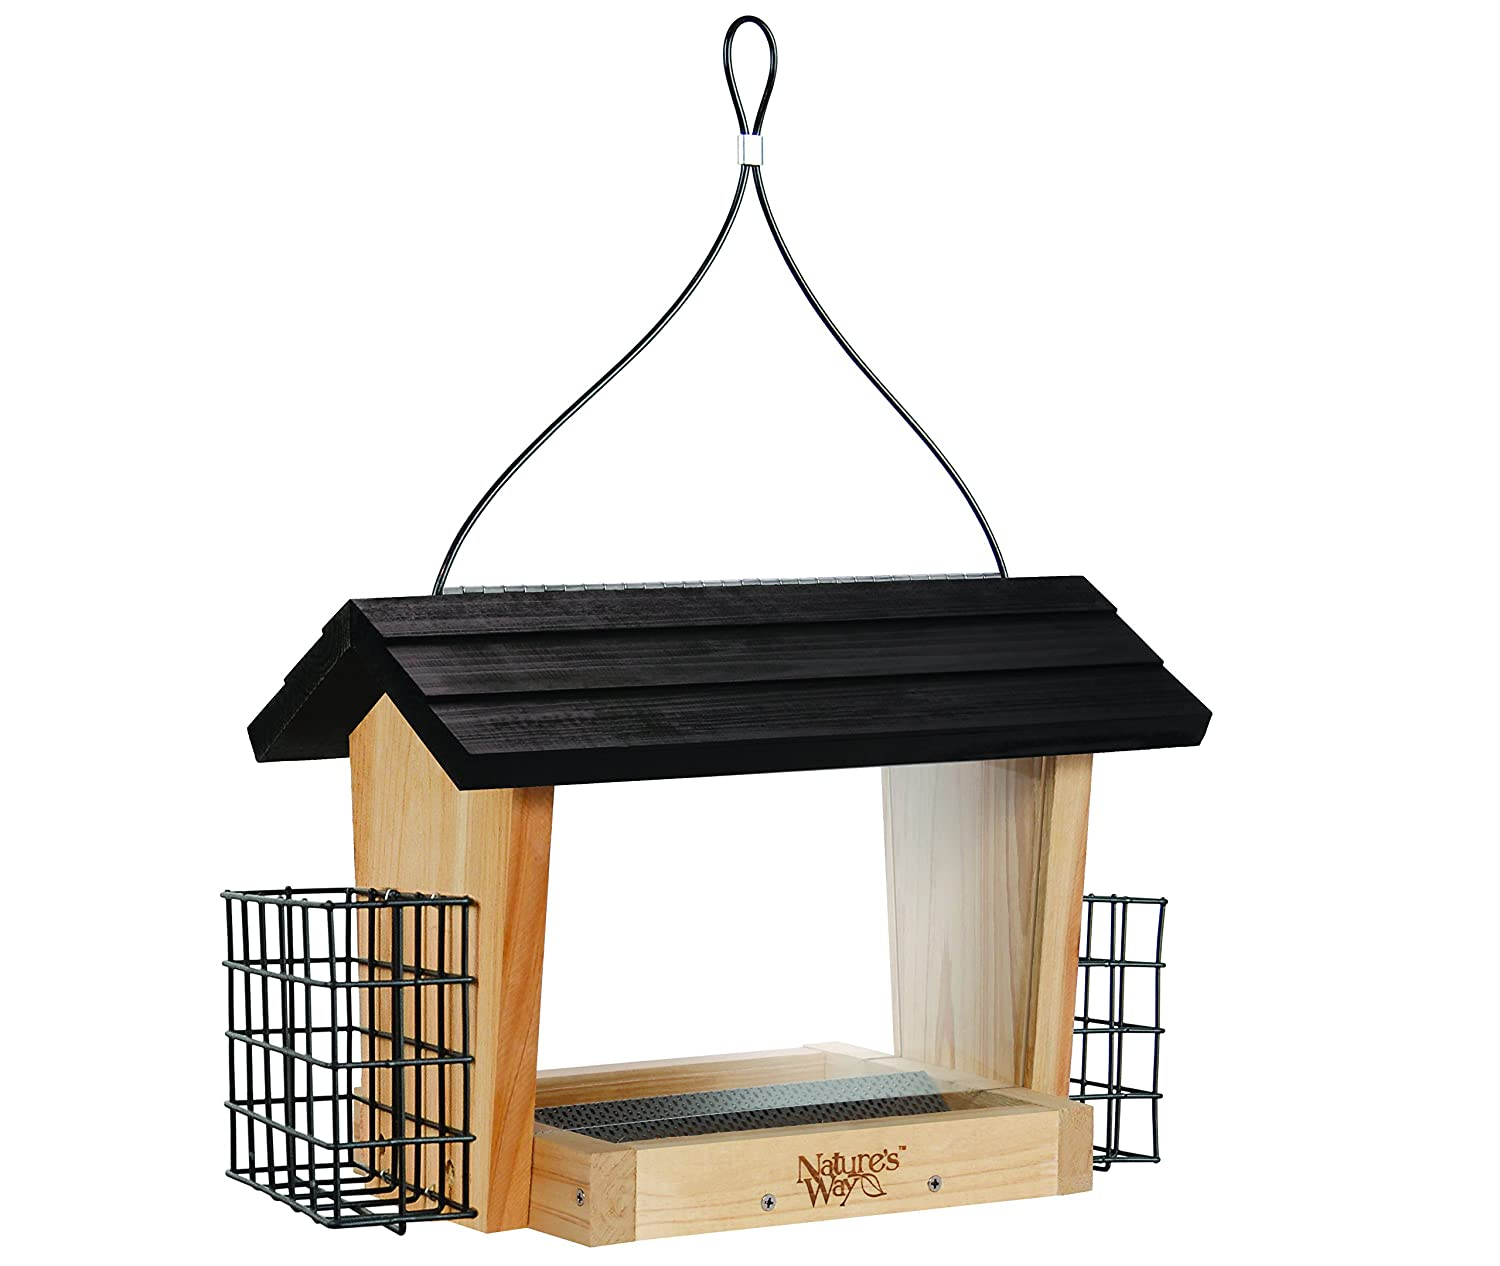 Nature's Way Bird Products CWF19 Cedar Hopper Bird Feeder with Suet Cage, 6-Quart